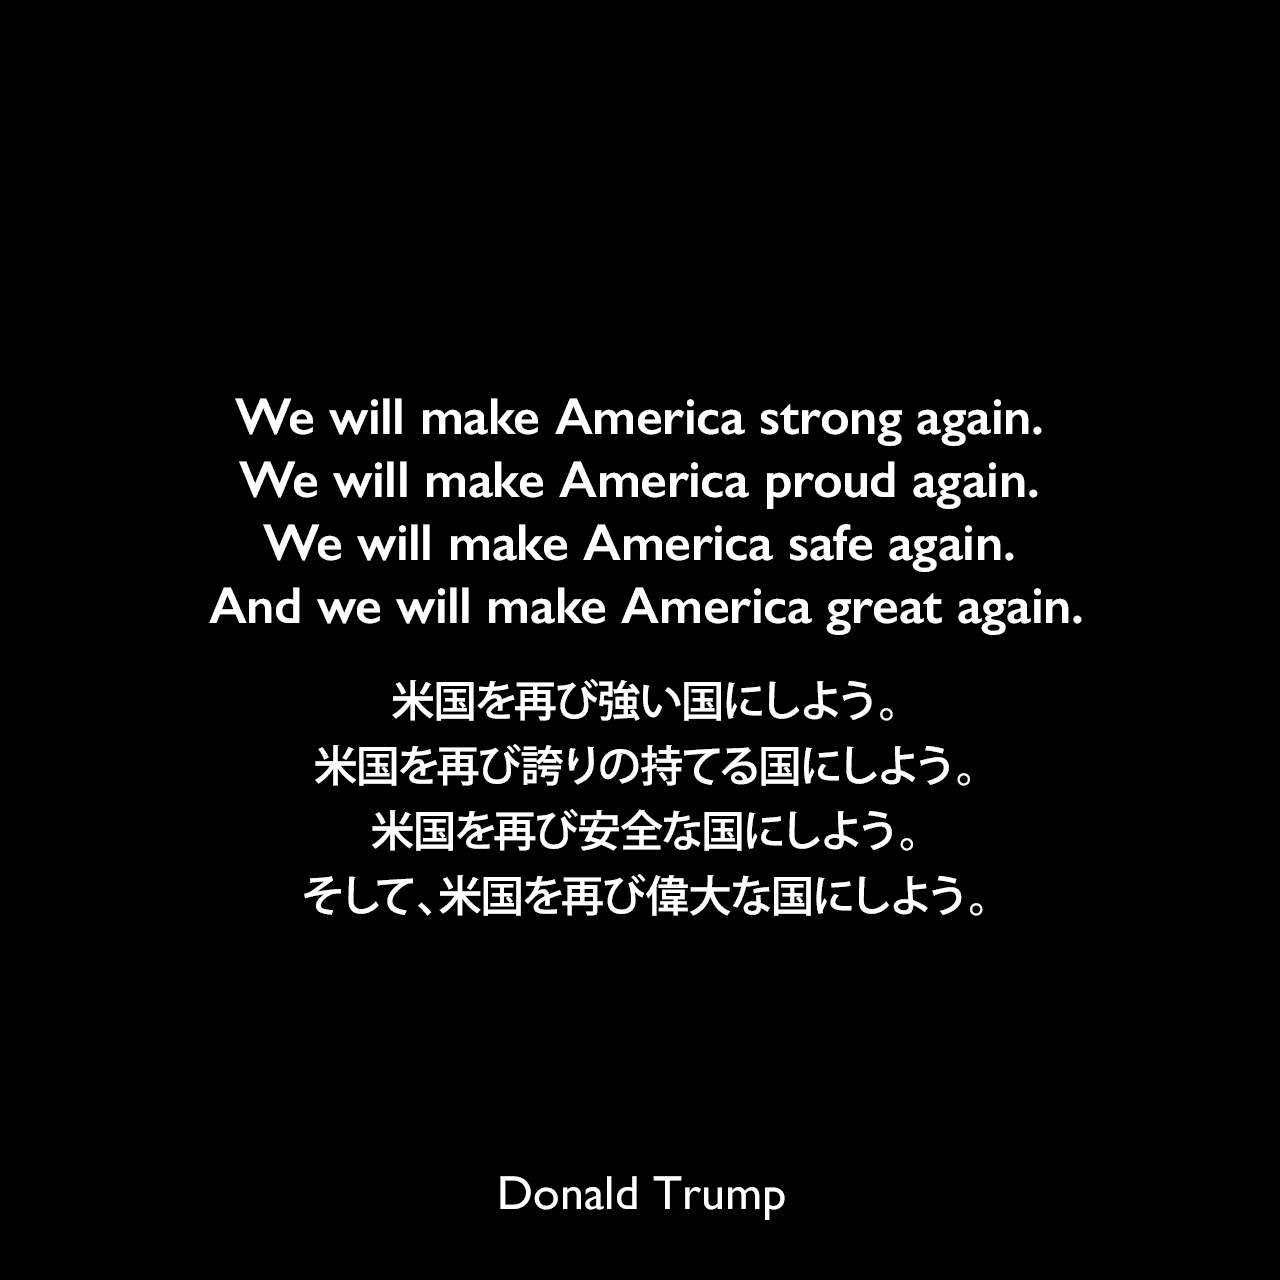 We will make America strong again. We will make America proud again. We will make America safe again. And we will make America great again.米国を再び強い国にしよう。米国を再び誇りの持てる国にしよう。米国を再び安全な国にしよう。そして、米国を再び偉大な国にしよう。- 2016年の共和党全国大会スピーチよりDonald Trump